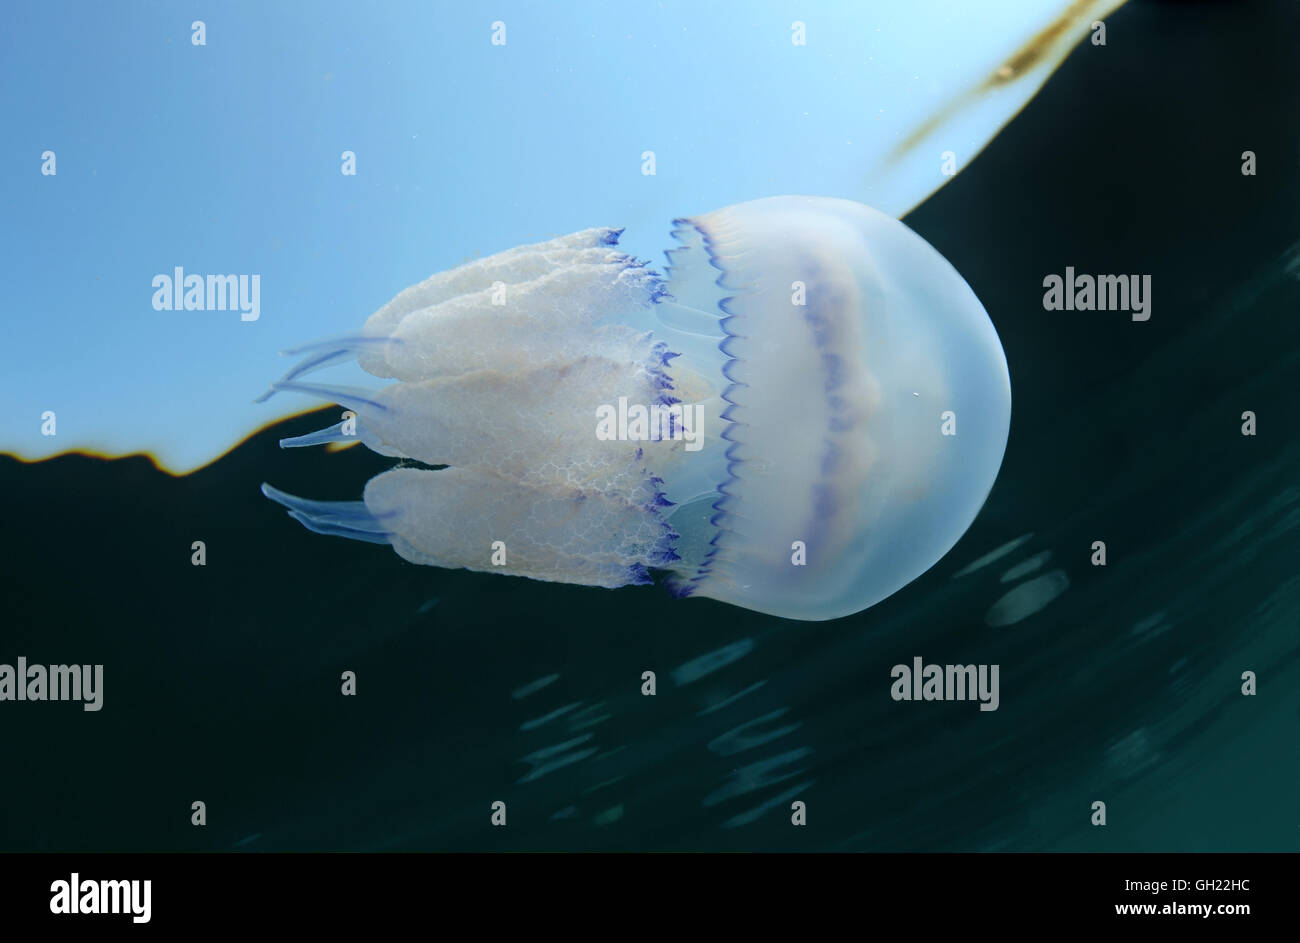 Barrel jellyfish, dustbin-lid jellyfish or frilly-mouthed jellyfish (Rhizostoma pulmo) swims beneath the surface Stock Photo